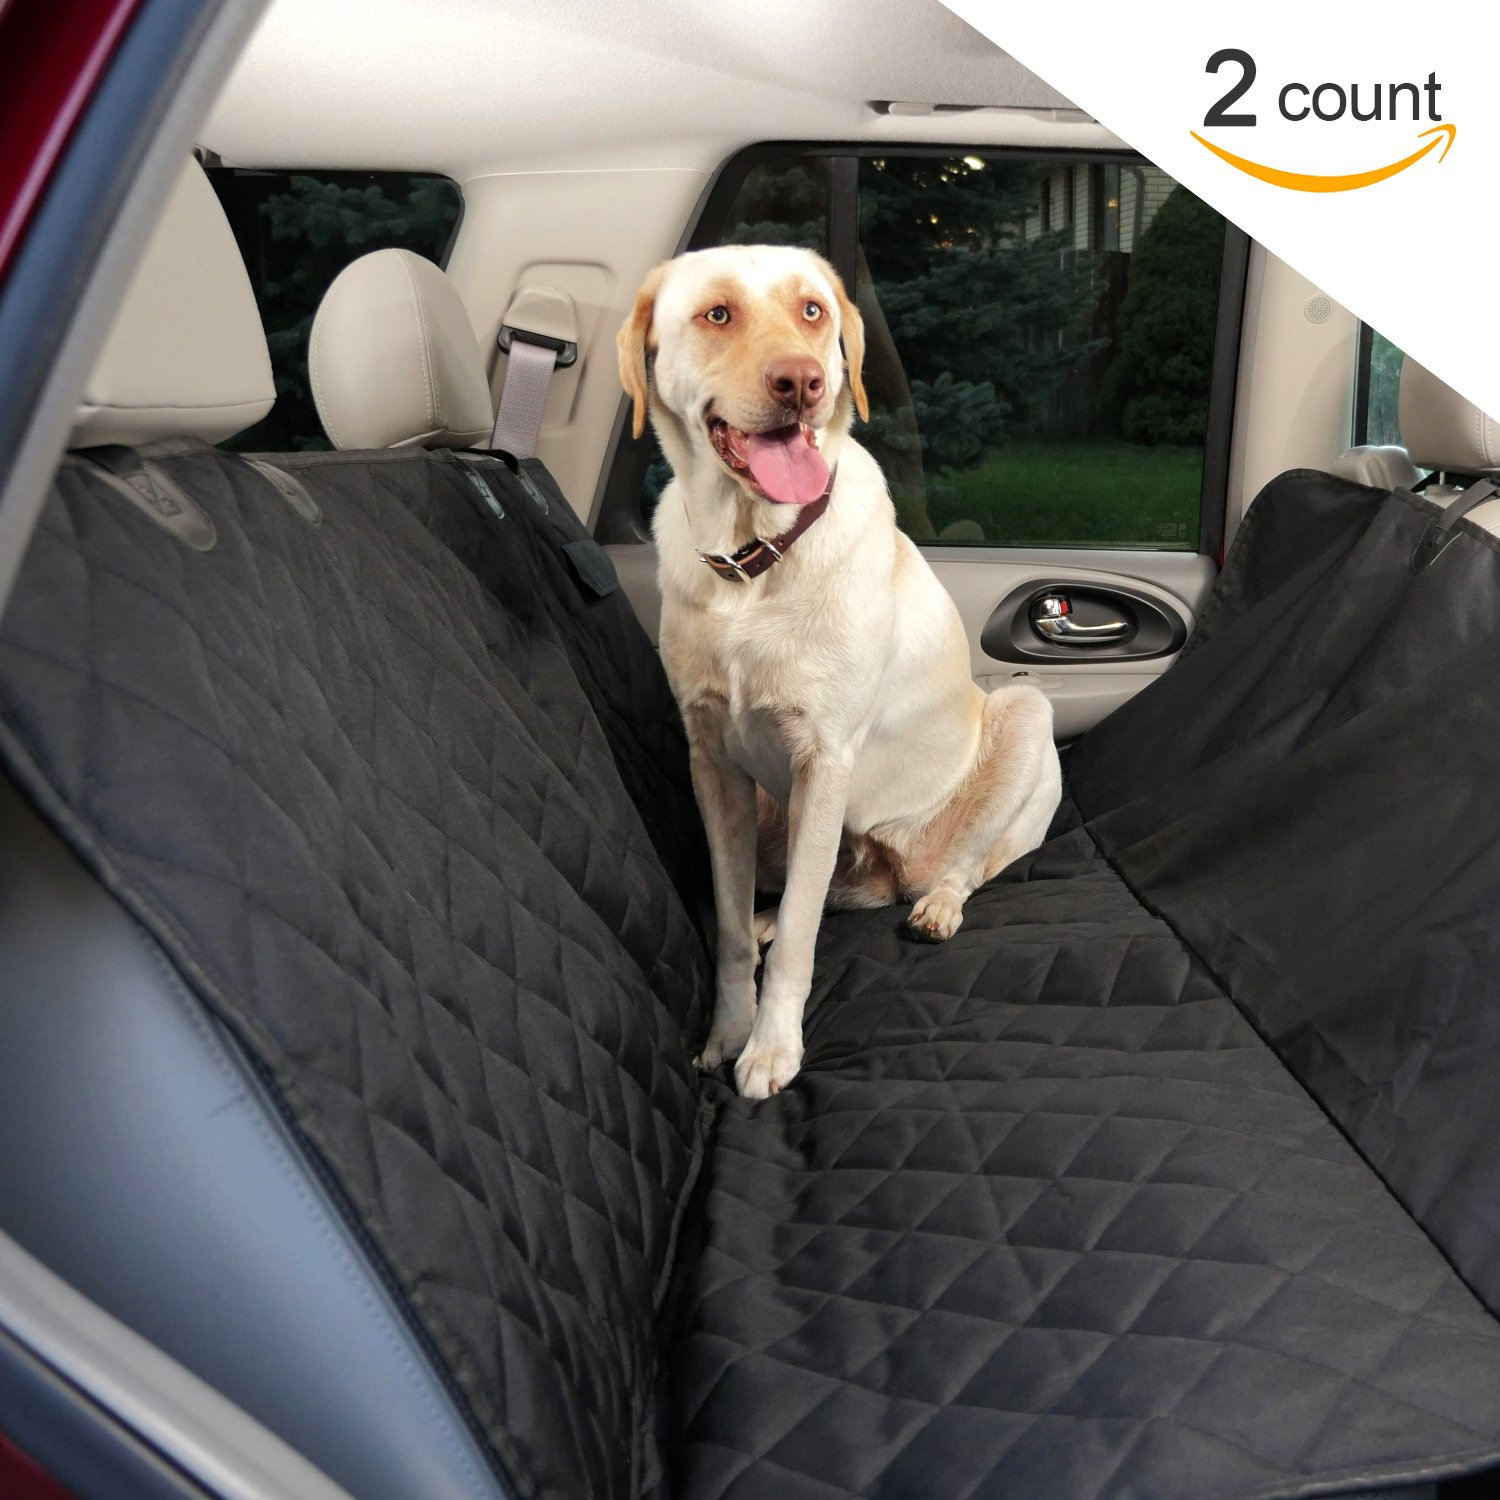 Premium Dog Seat Covers for Cars (2 Pack) - Waterproof Hammock Style Pet Seat Covers. Quilted 600d Cover for Leather & Fabric Back Seats in Cars, Trucks and Suv's